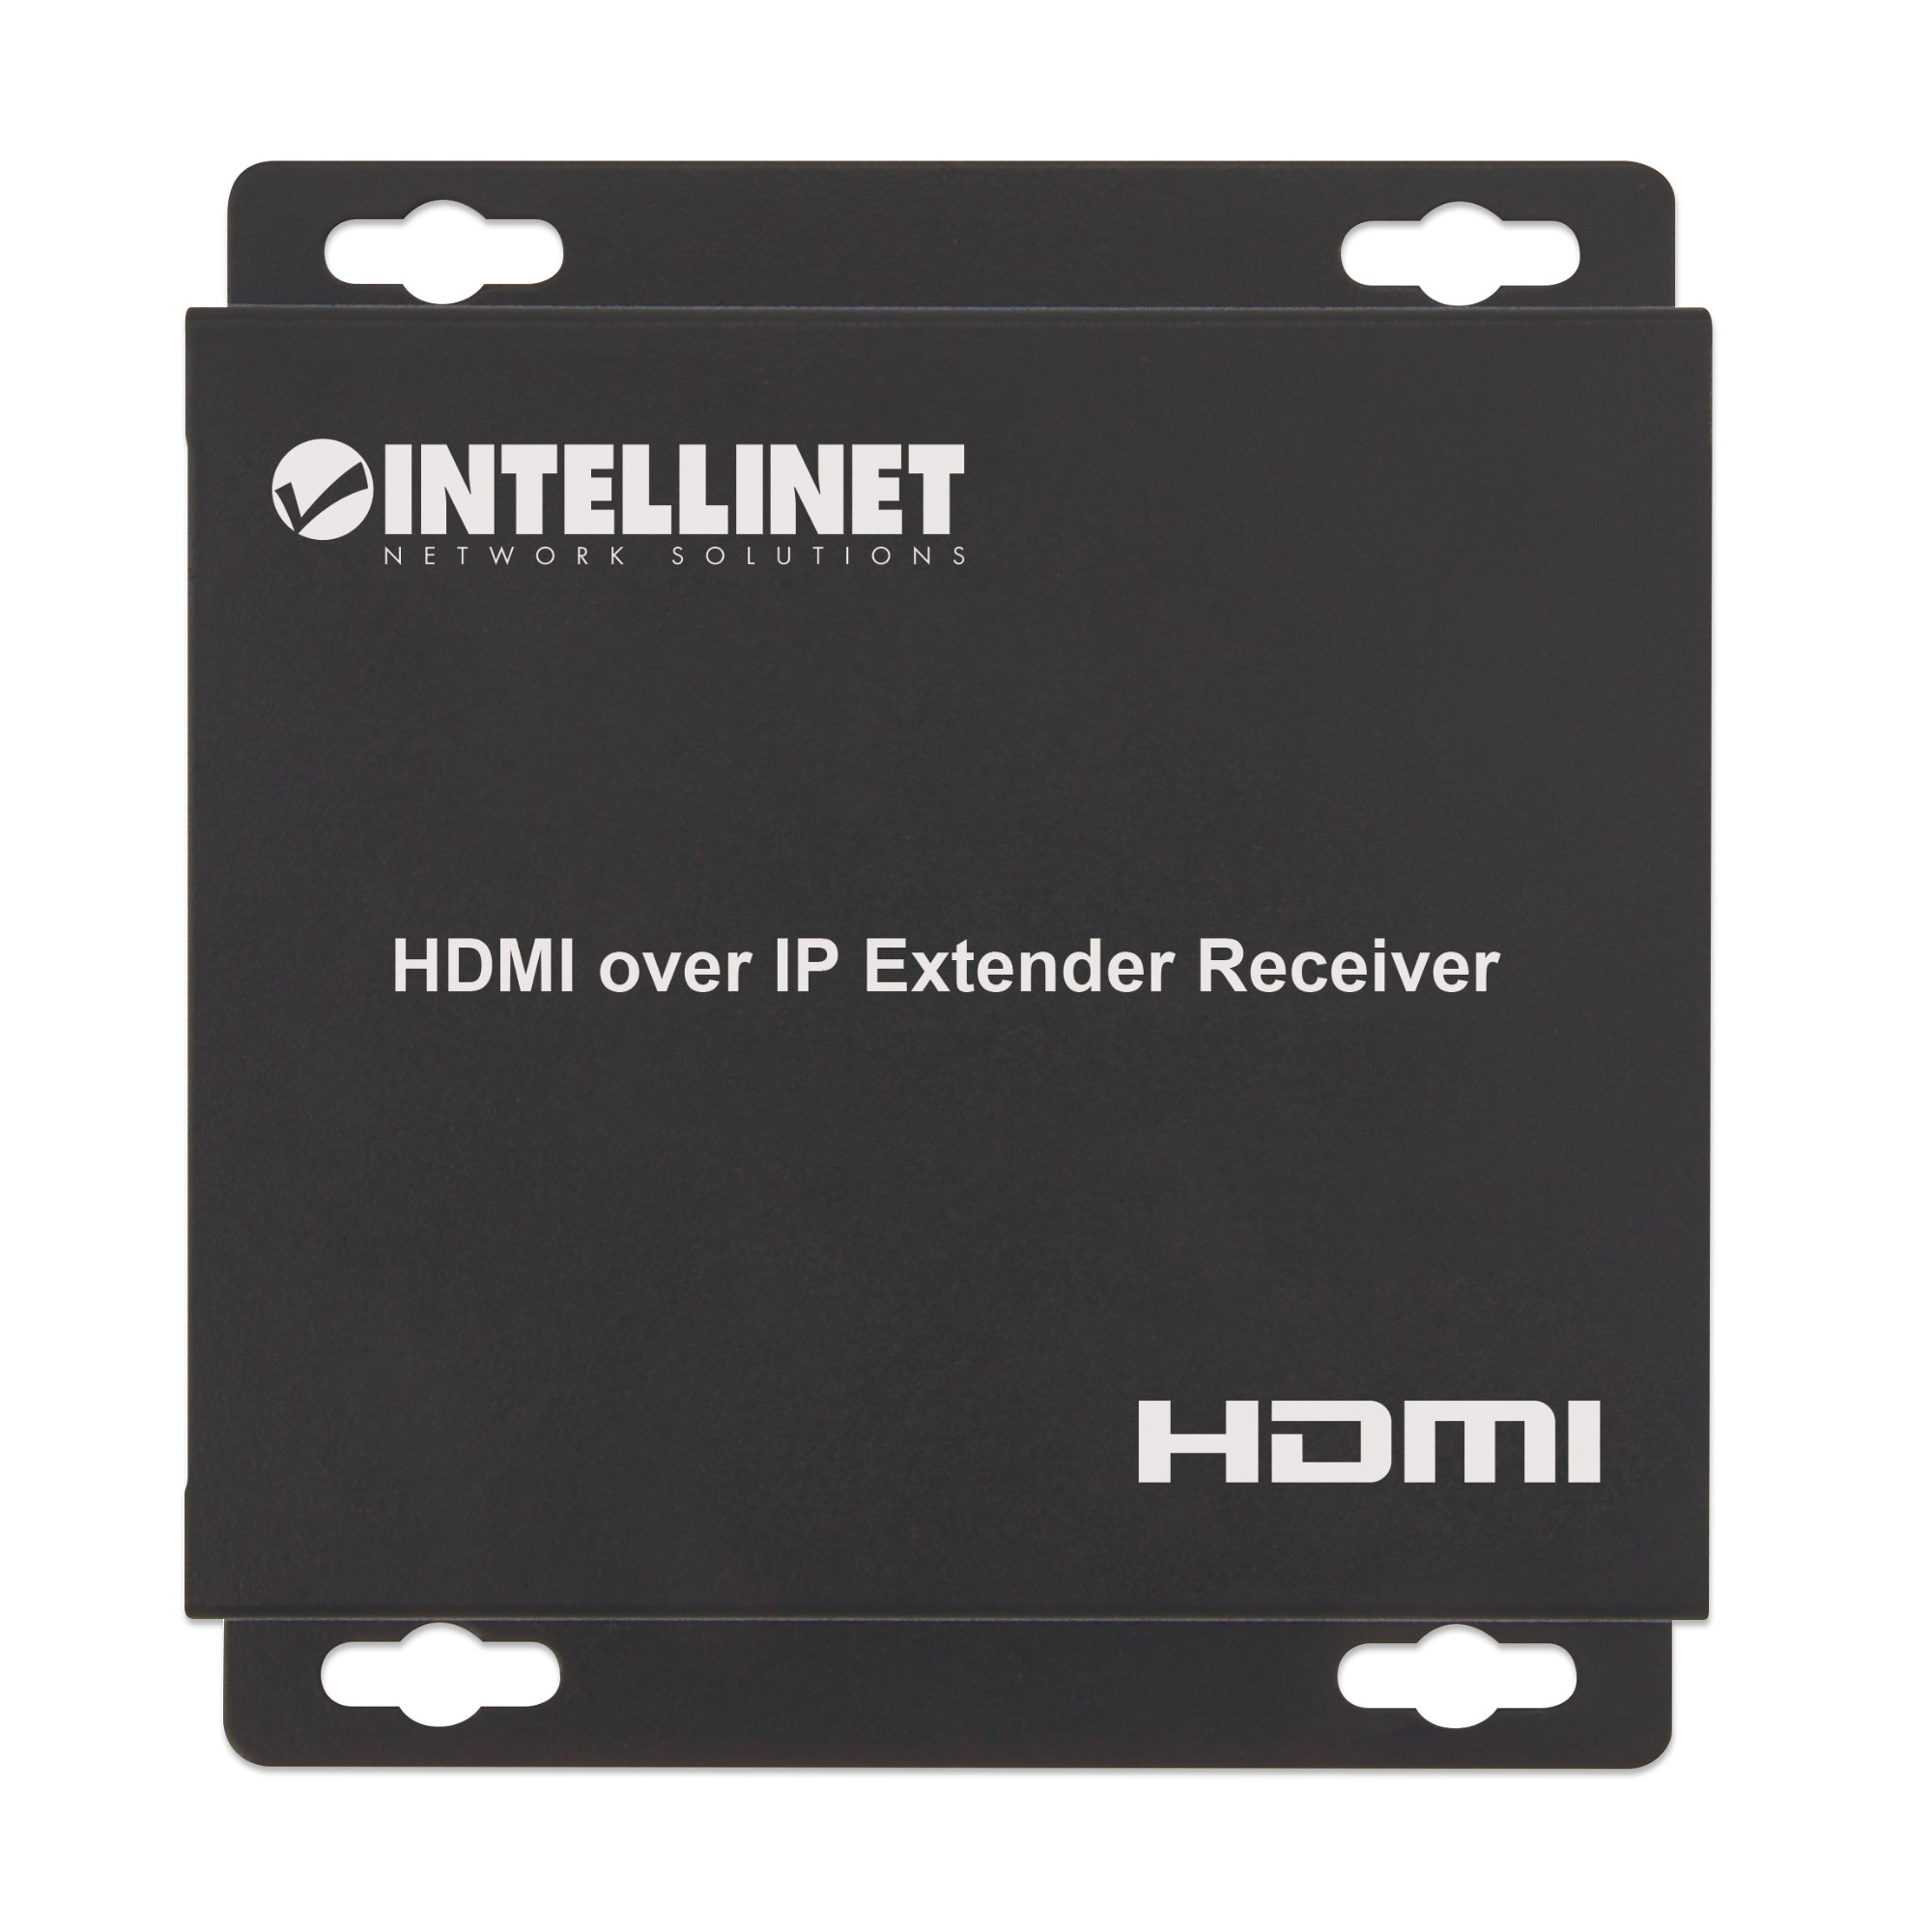 HDMI over IP Extender Receiver